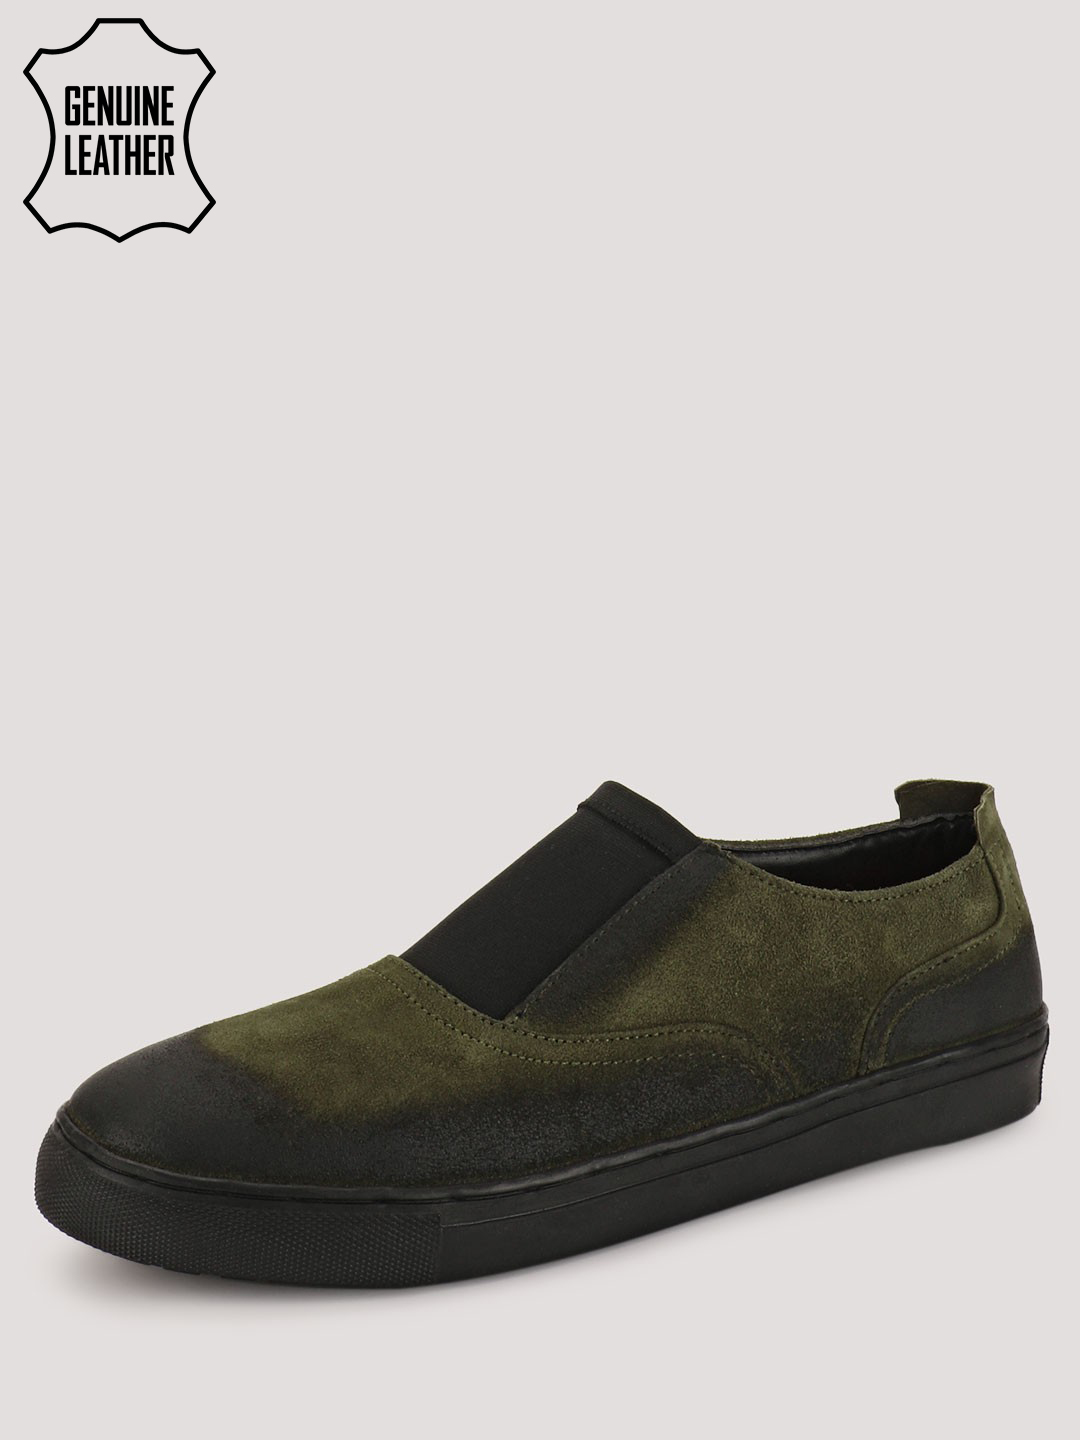 Marcello & Ferri Green Slip Ons With Shaded Effect On Upper 1